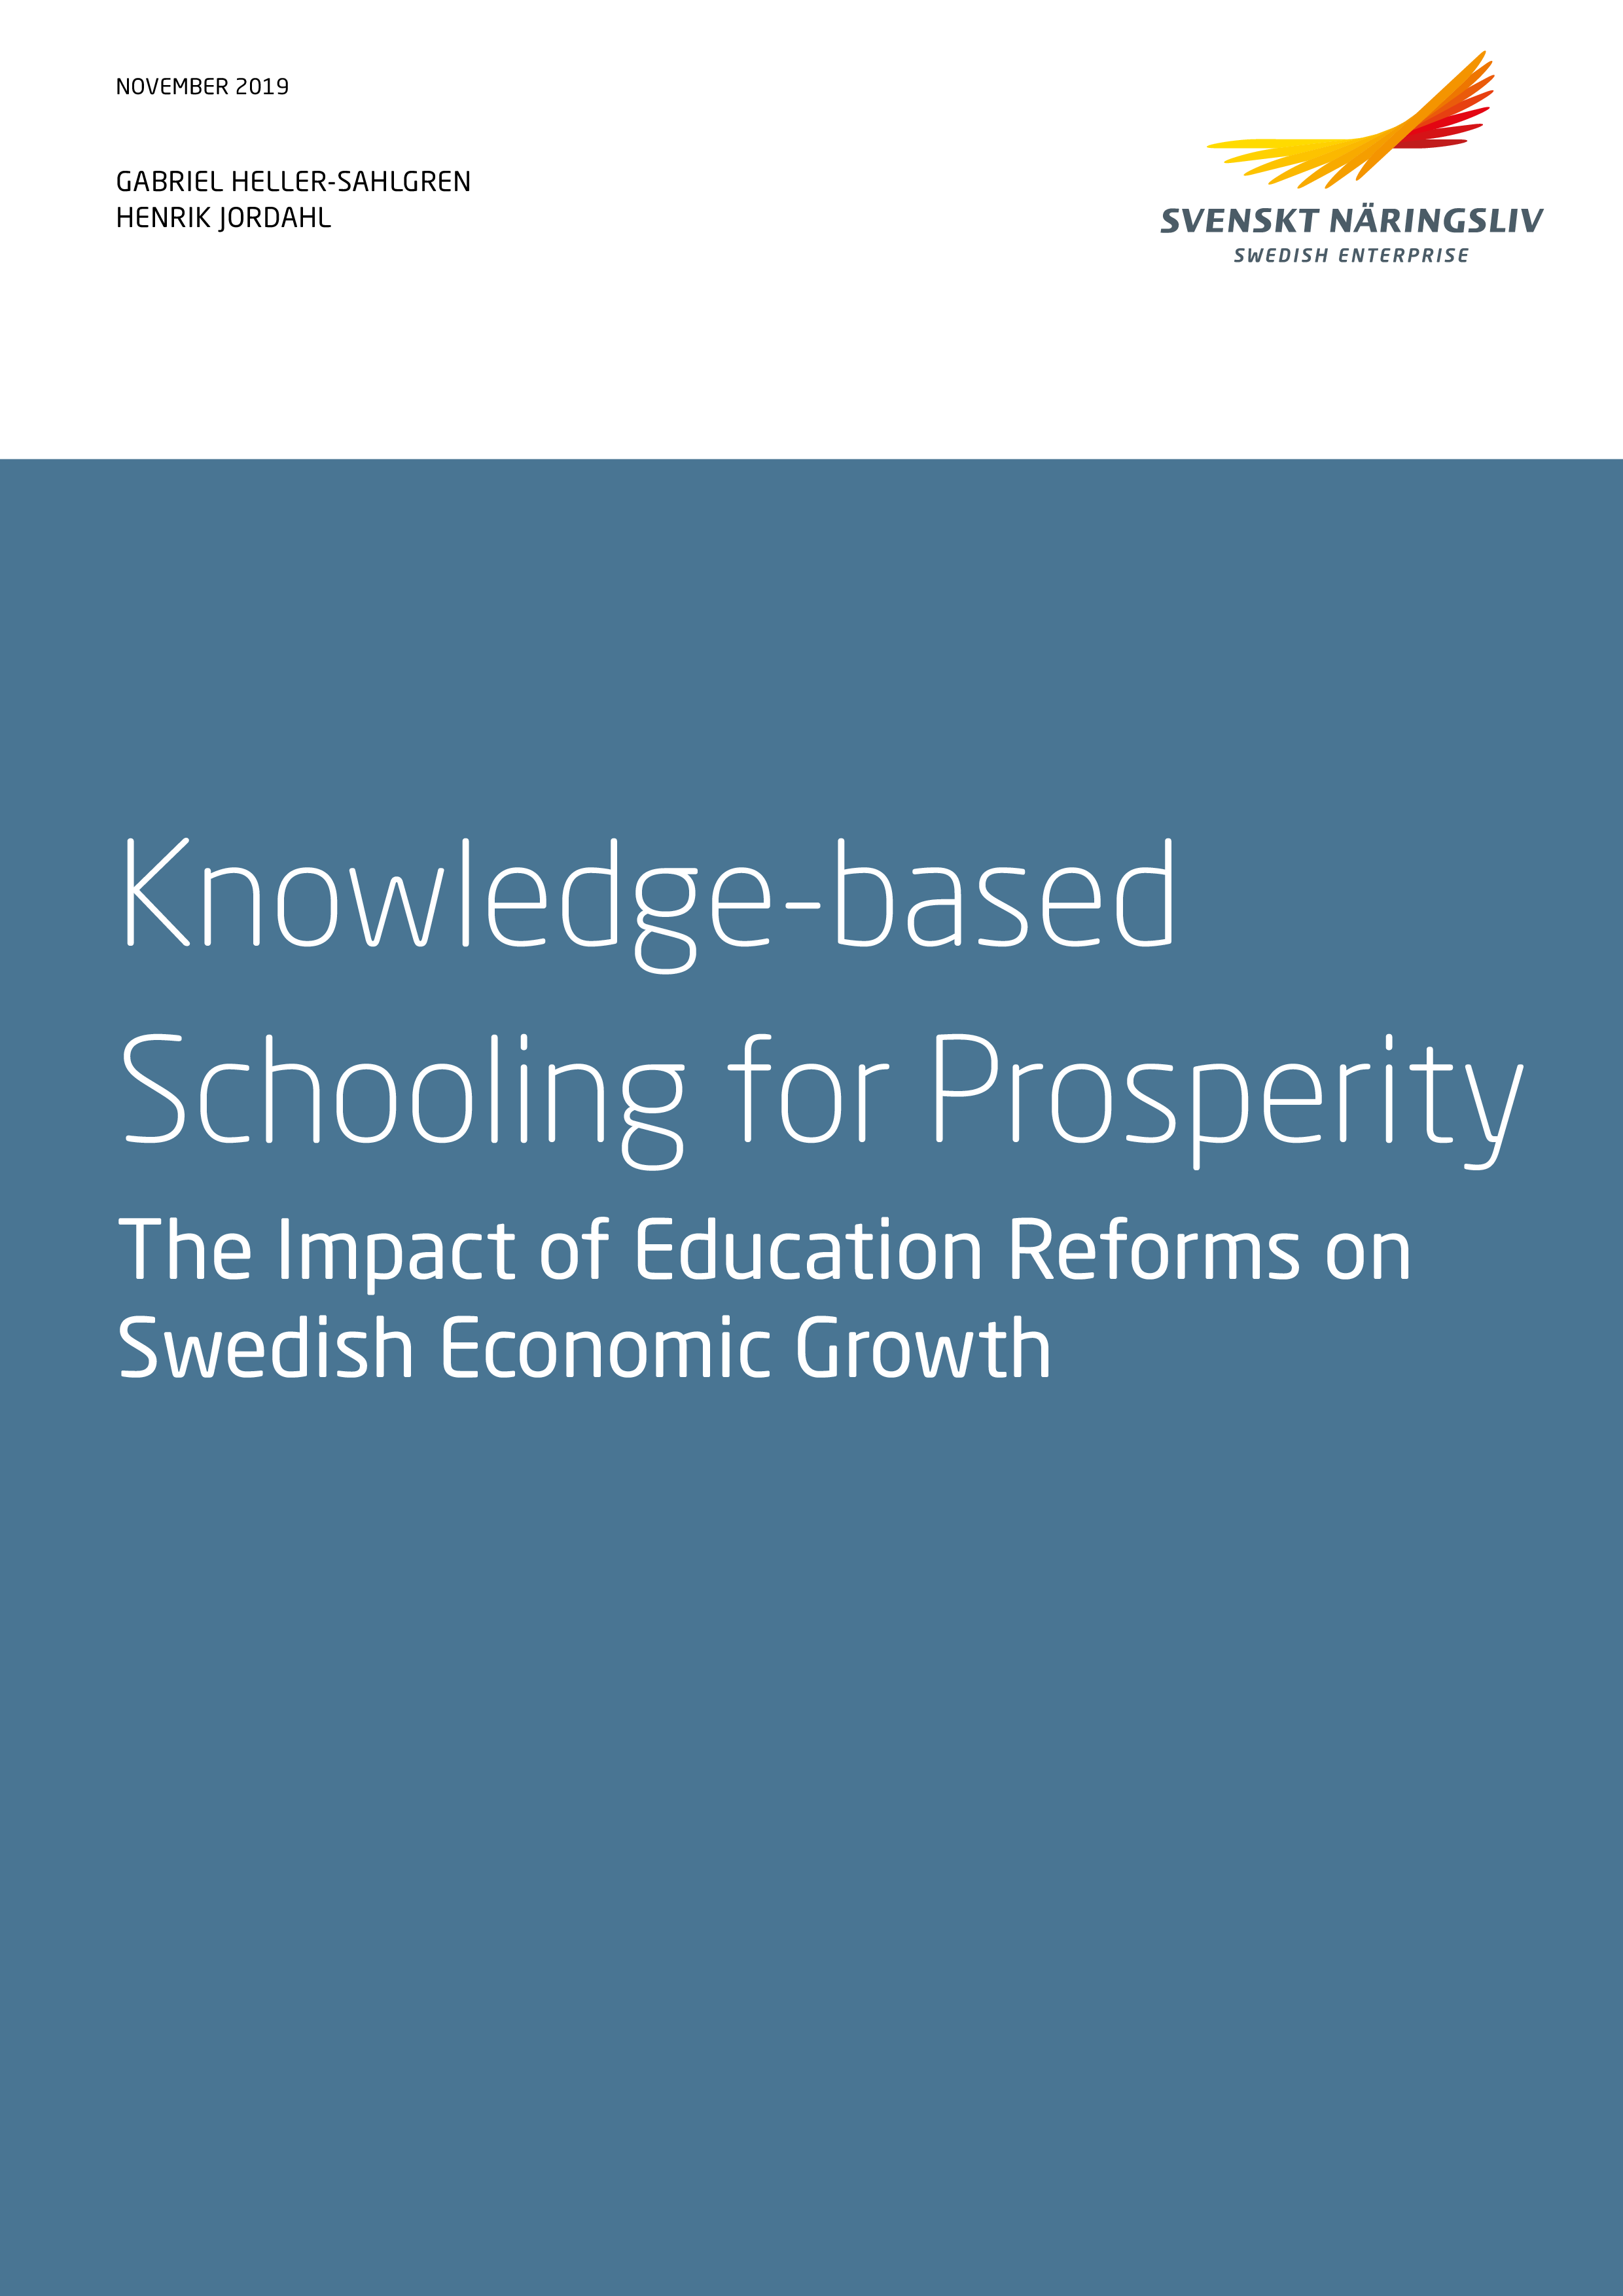 Knowledge-based Schooling for Prosperity - The Impact of Education Reforms on Swedish Economic Growth